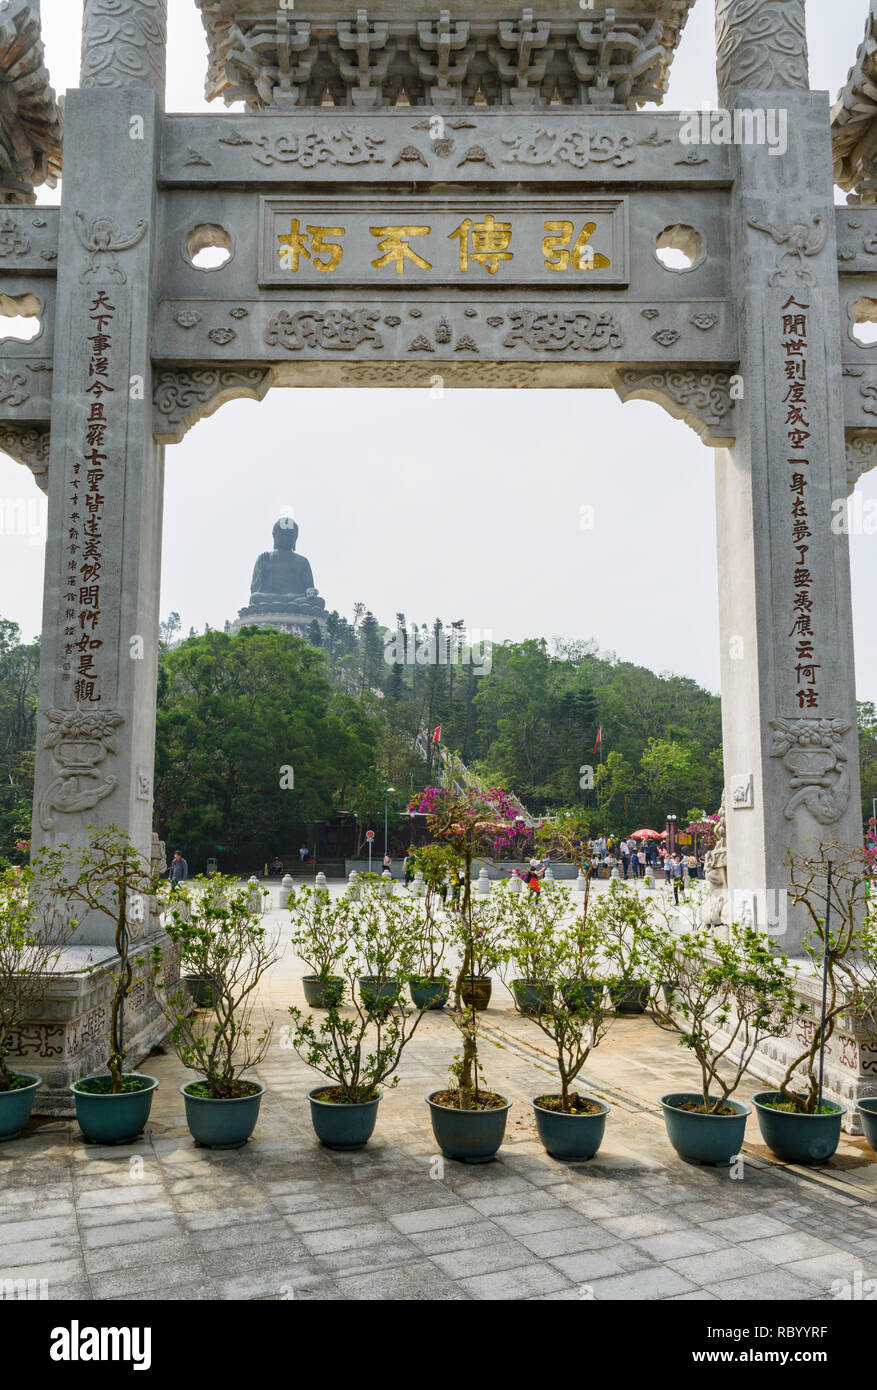 Framed view of the Tian Tan Buddha through the Mountain Gate and the Literary Couplet at the Po Lin Monastery, Lantau Island, Hong Kong - Stock Image